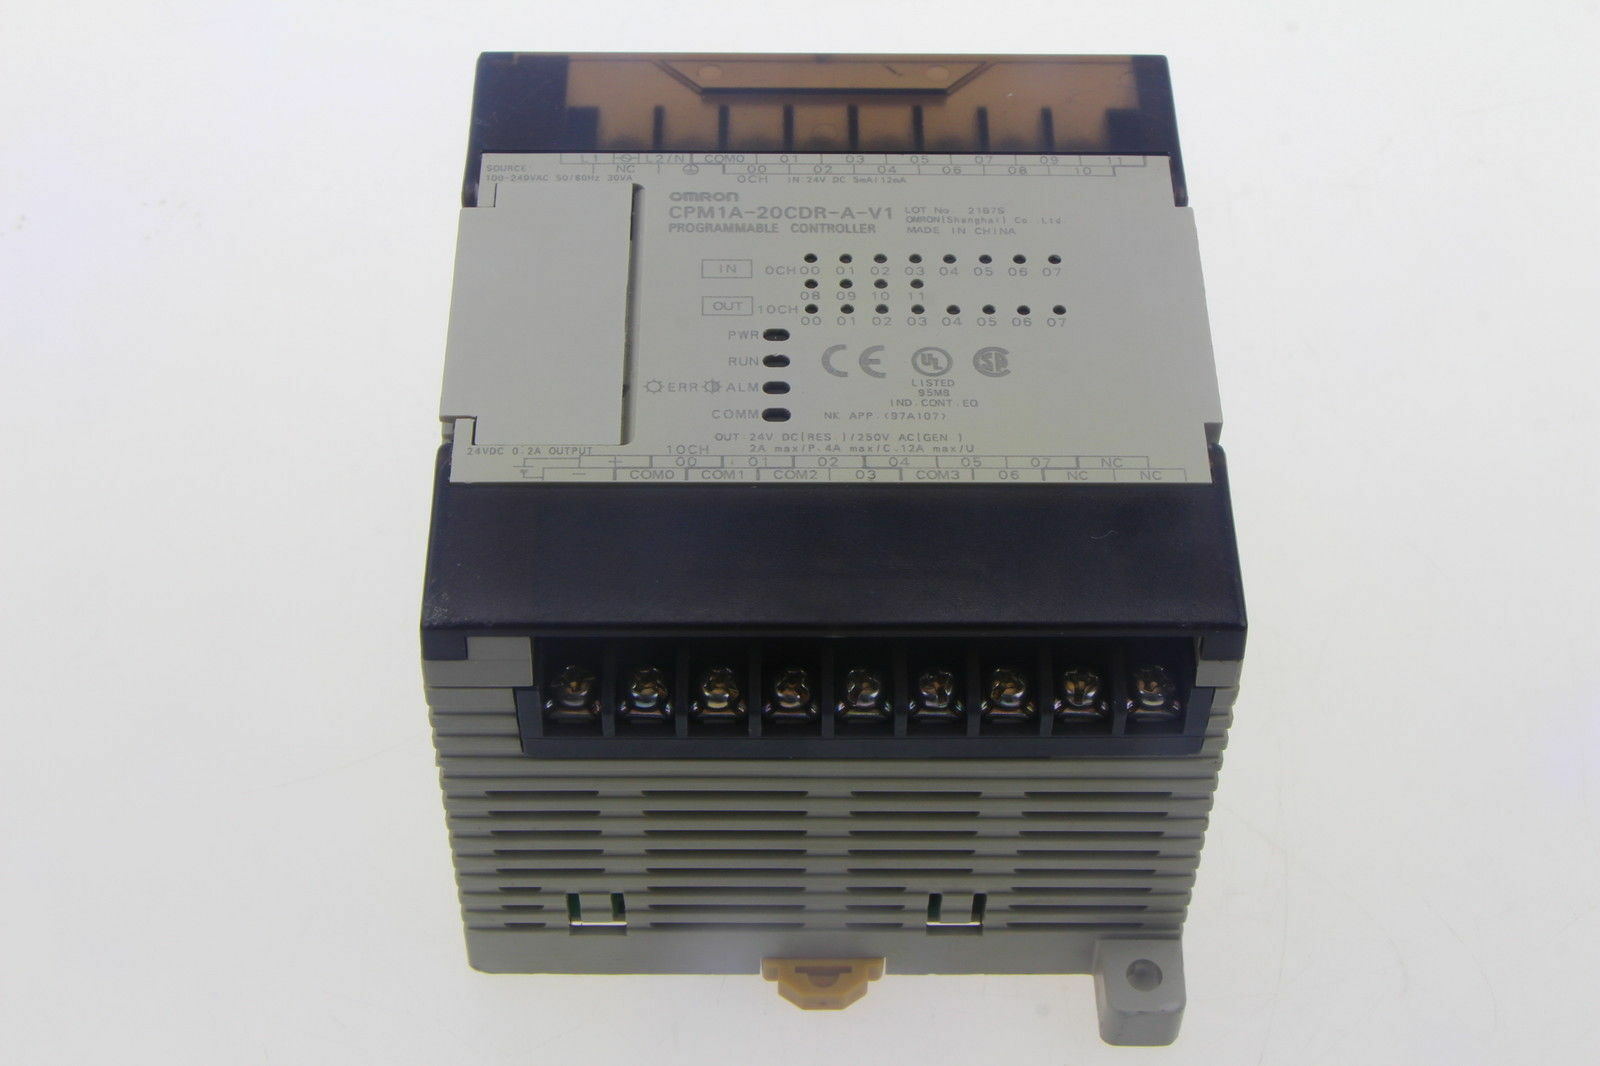 1PCS used Omron CPM1A-20CDR-A-V1 PLC tested